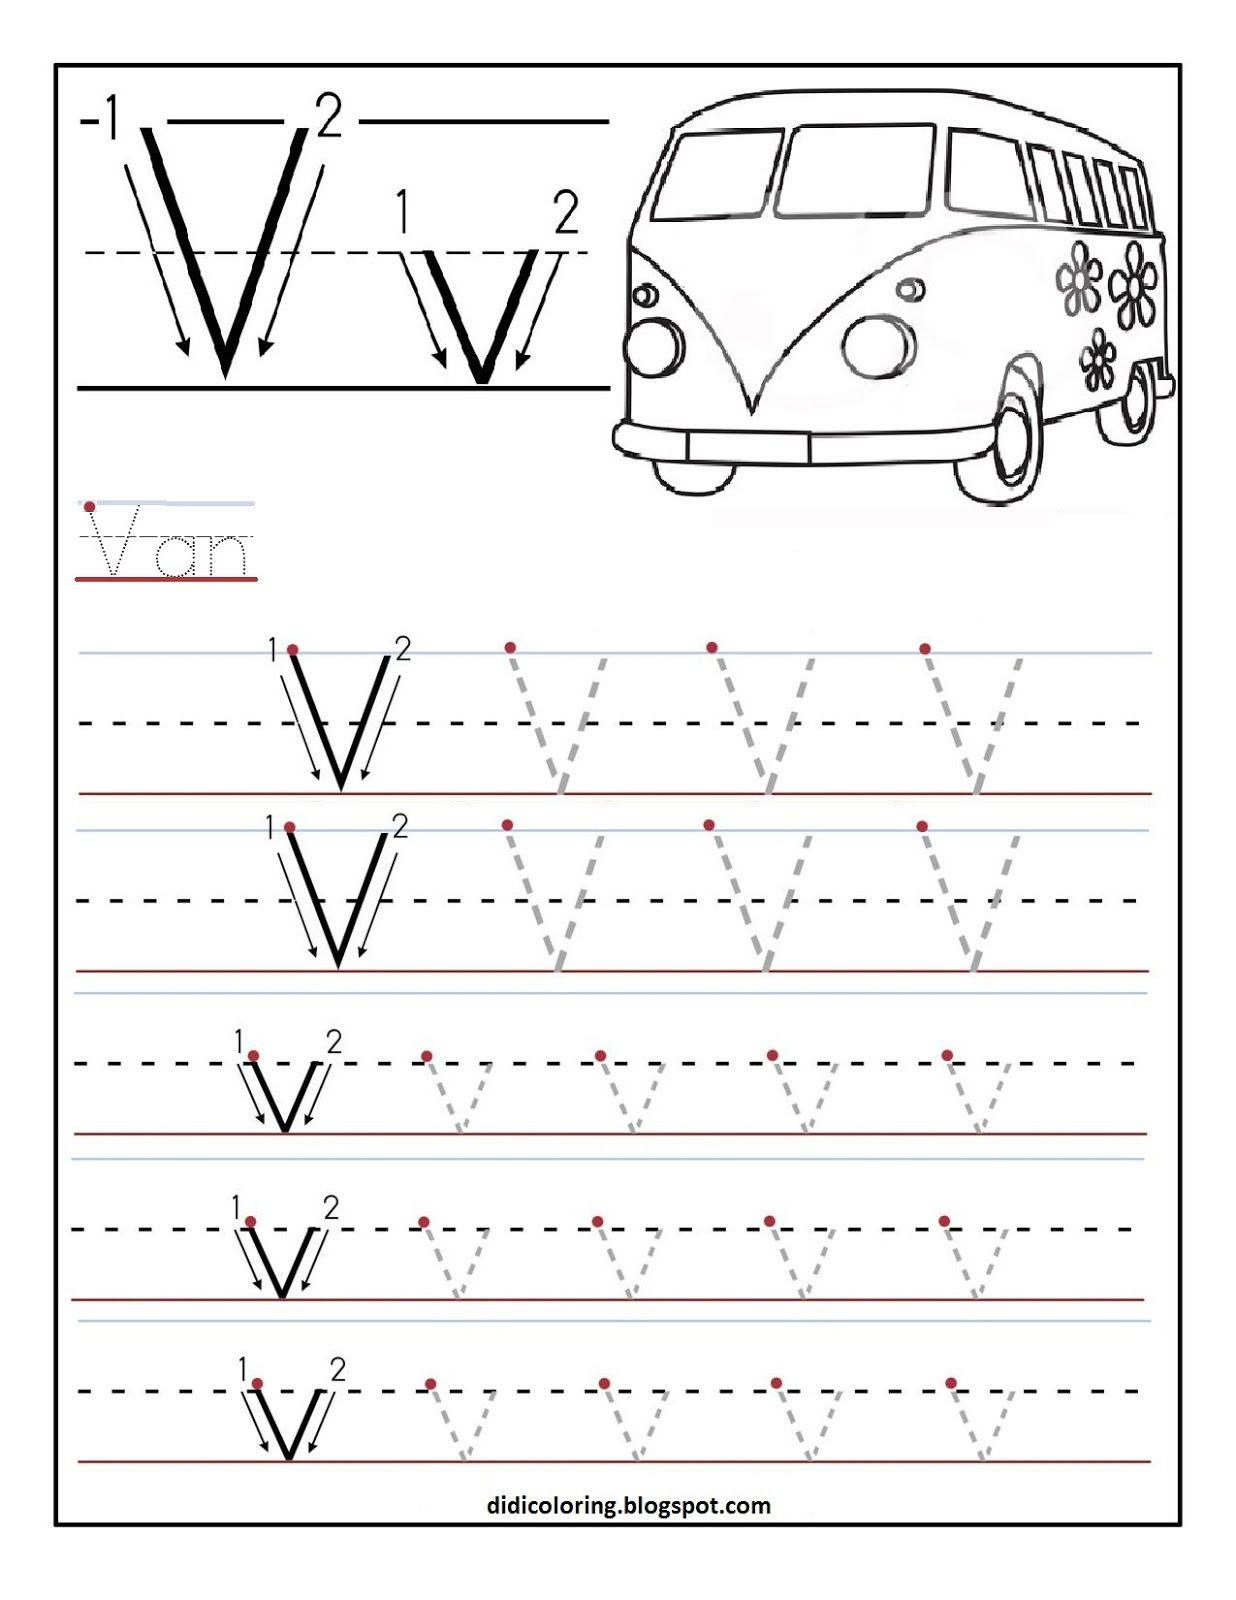 Free Printable Worksheet Letter V For Your Child To Learn